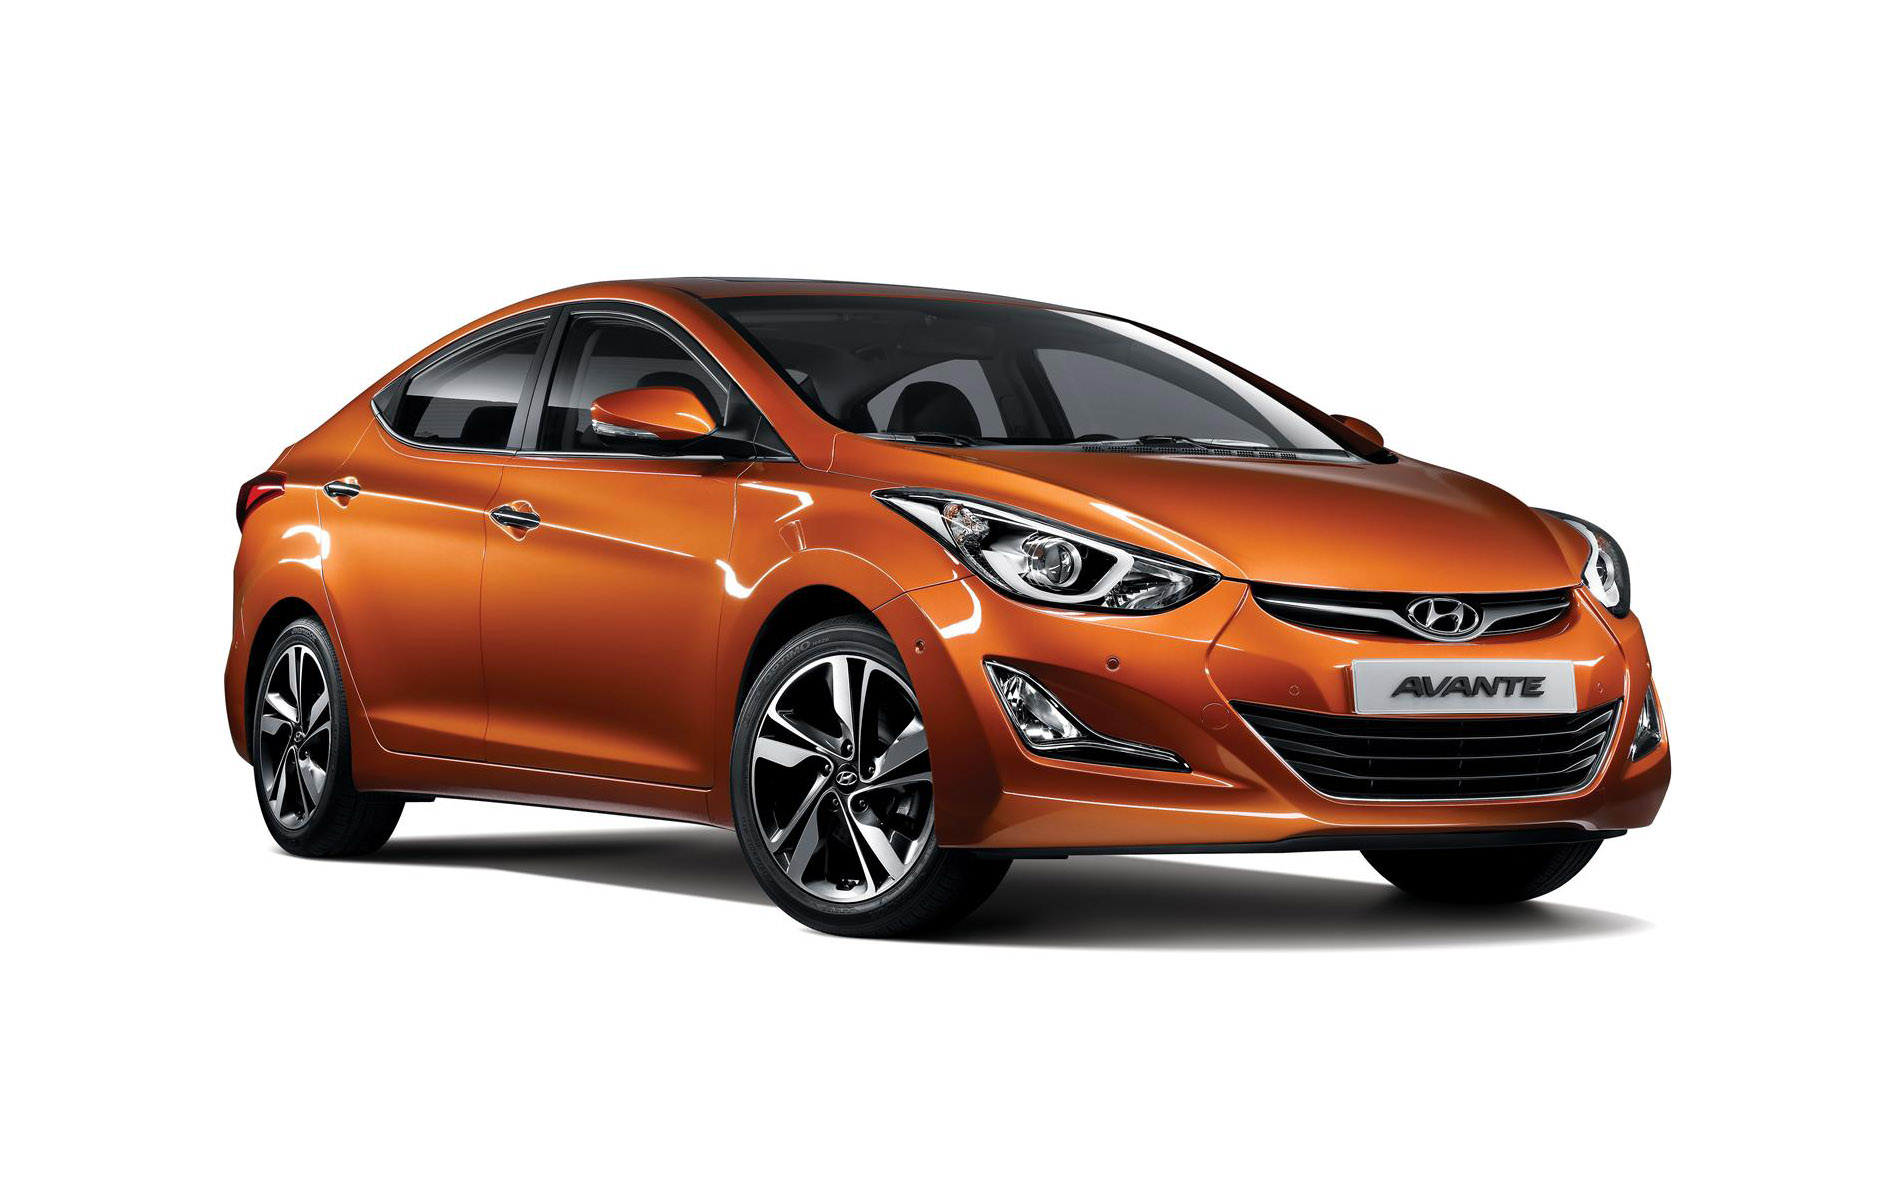 2014 hyundai elantra facelift. Black Bedroom Furniture Sets. Home Design Ideas